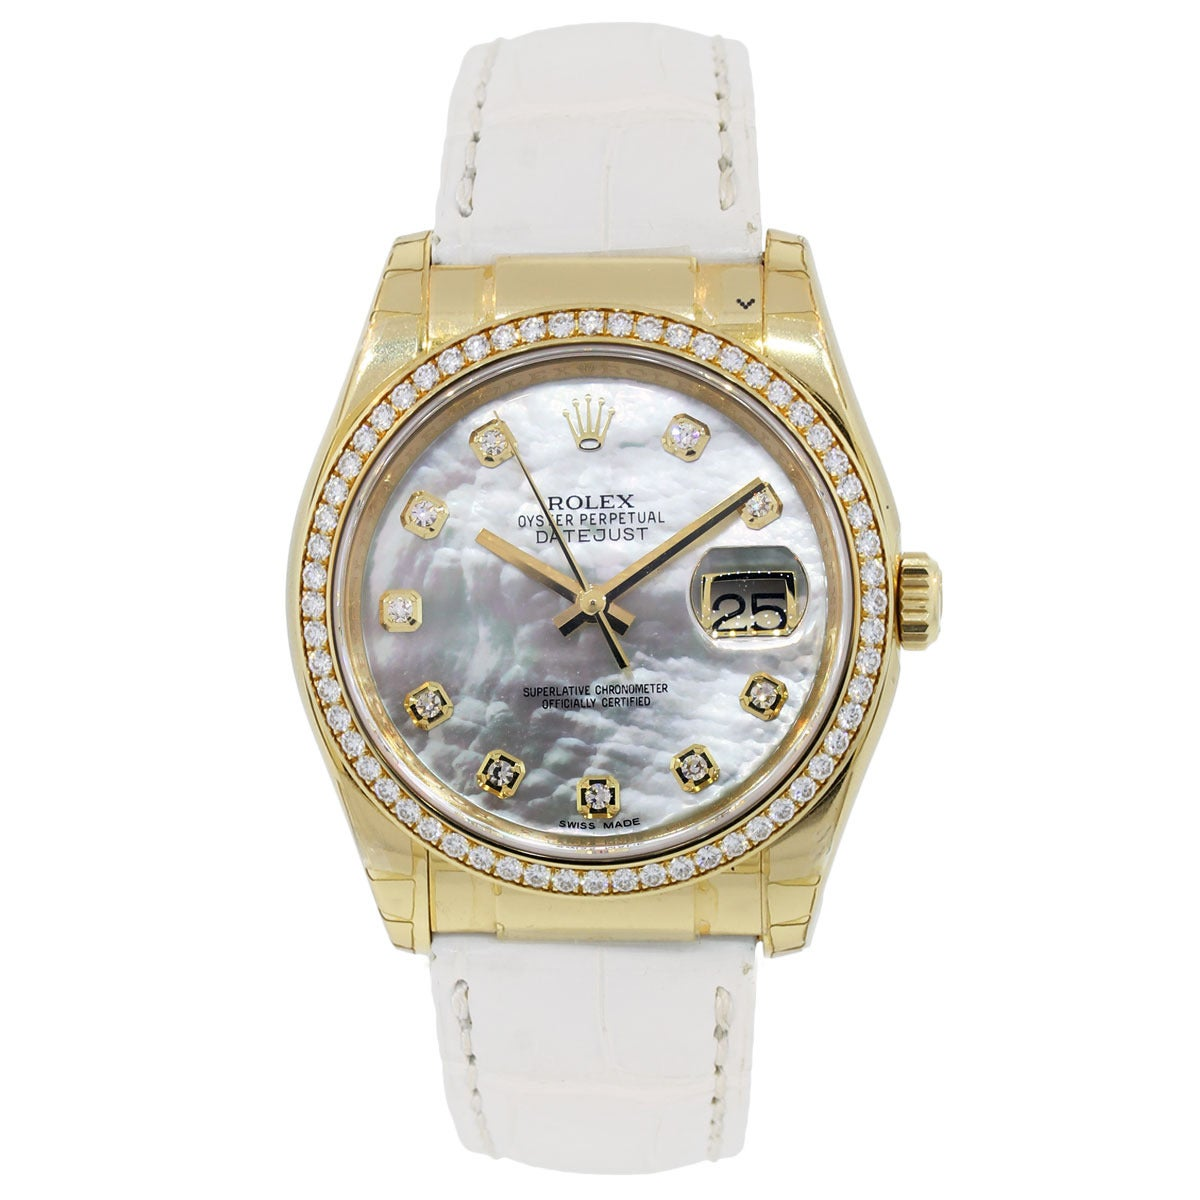 Brand: Rolex